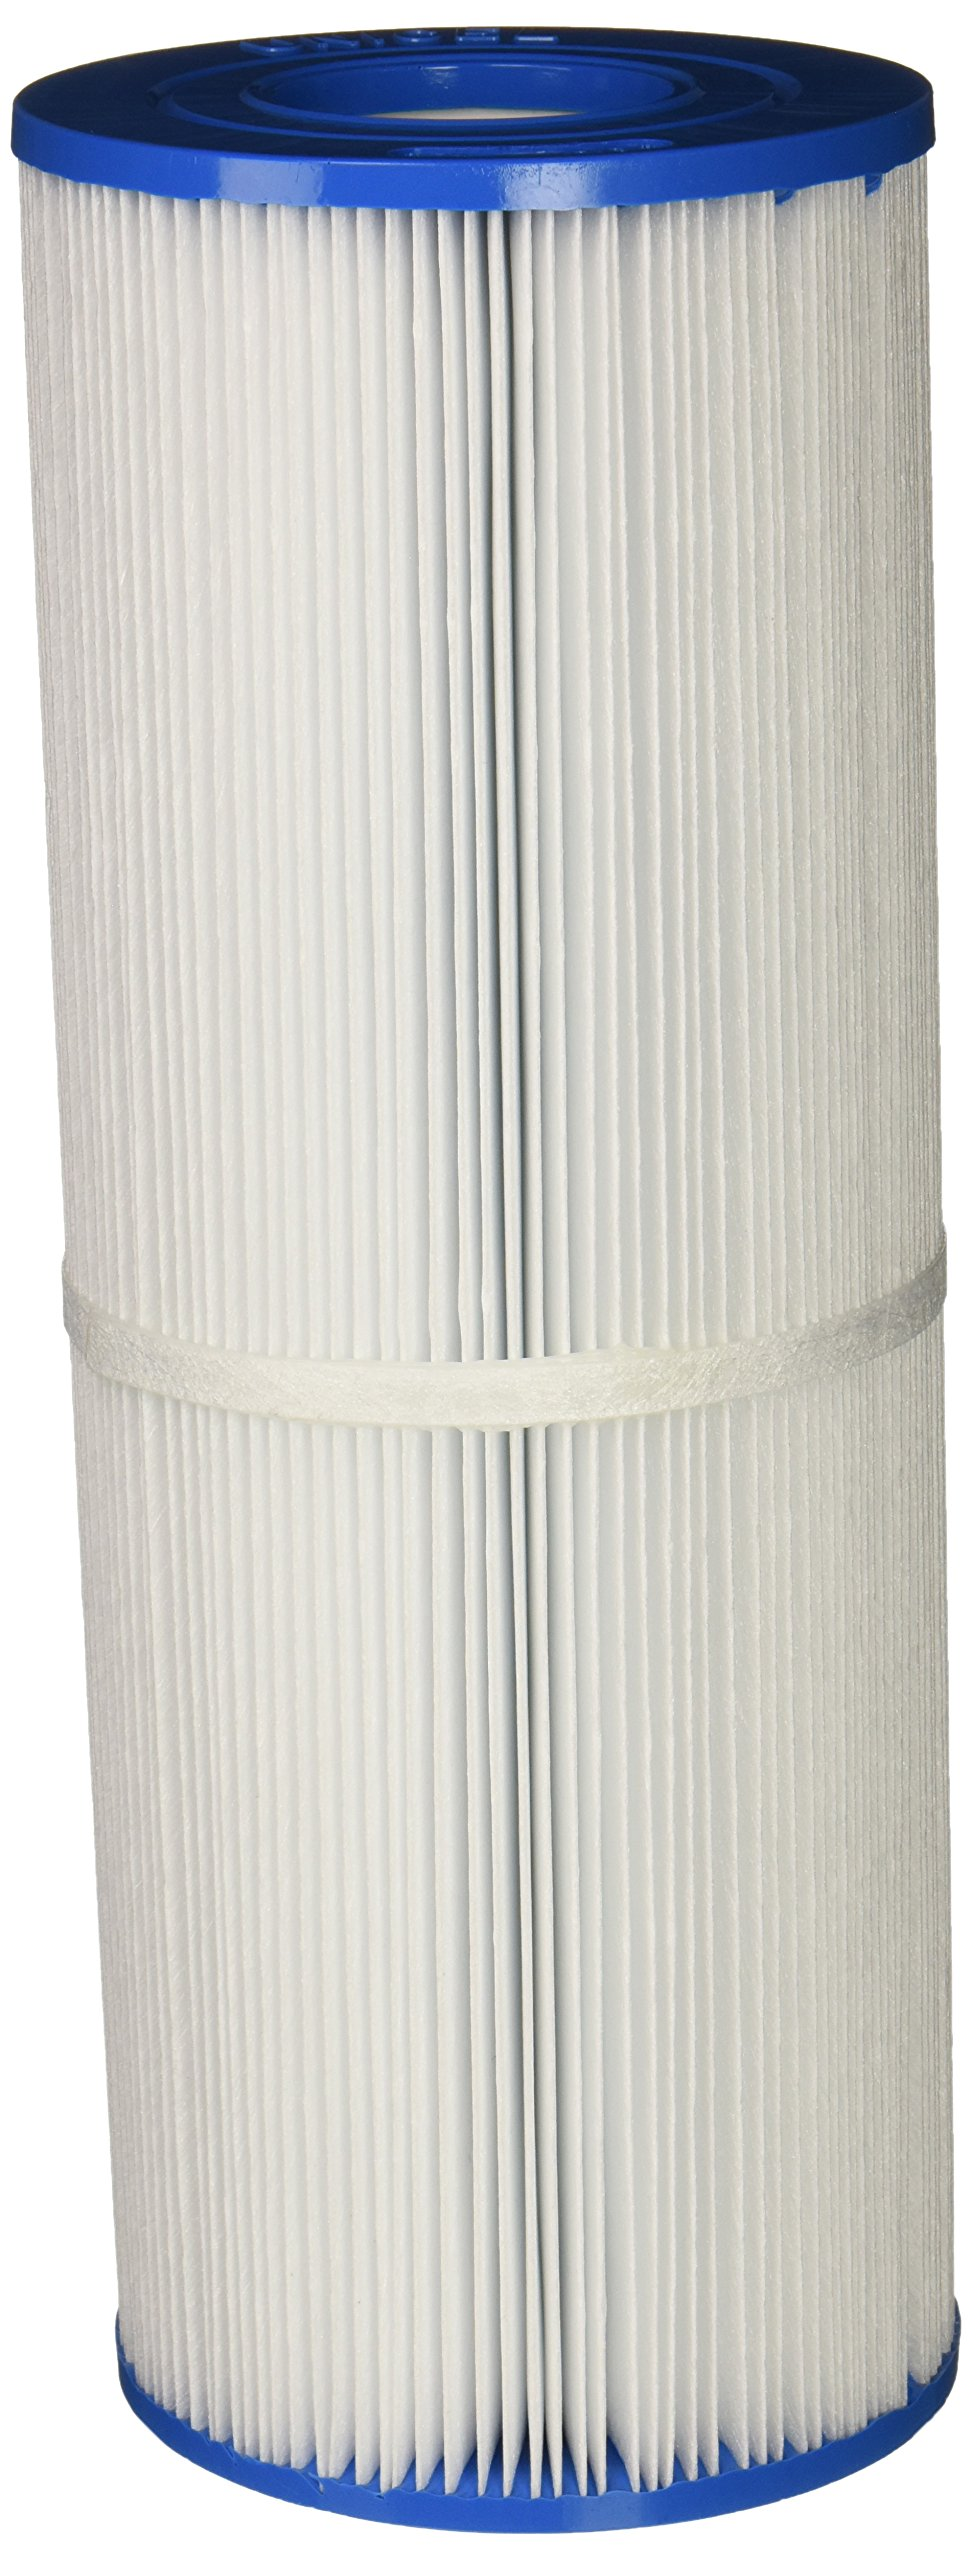 Unicel C-4326 Replacement Filter Cartridge for 25 sq. ft. Rainbow, Waterway Plastics, Custom Molded Products product image